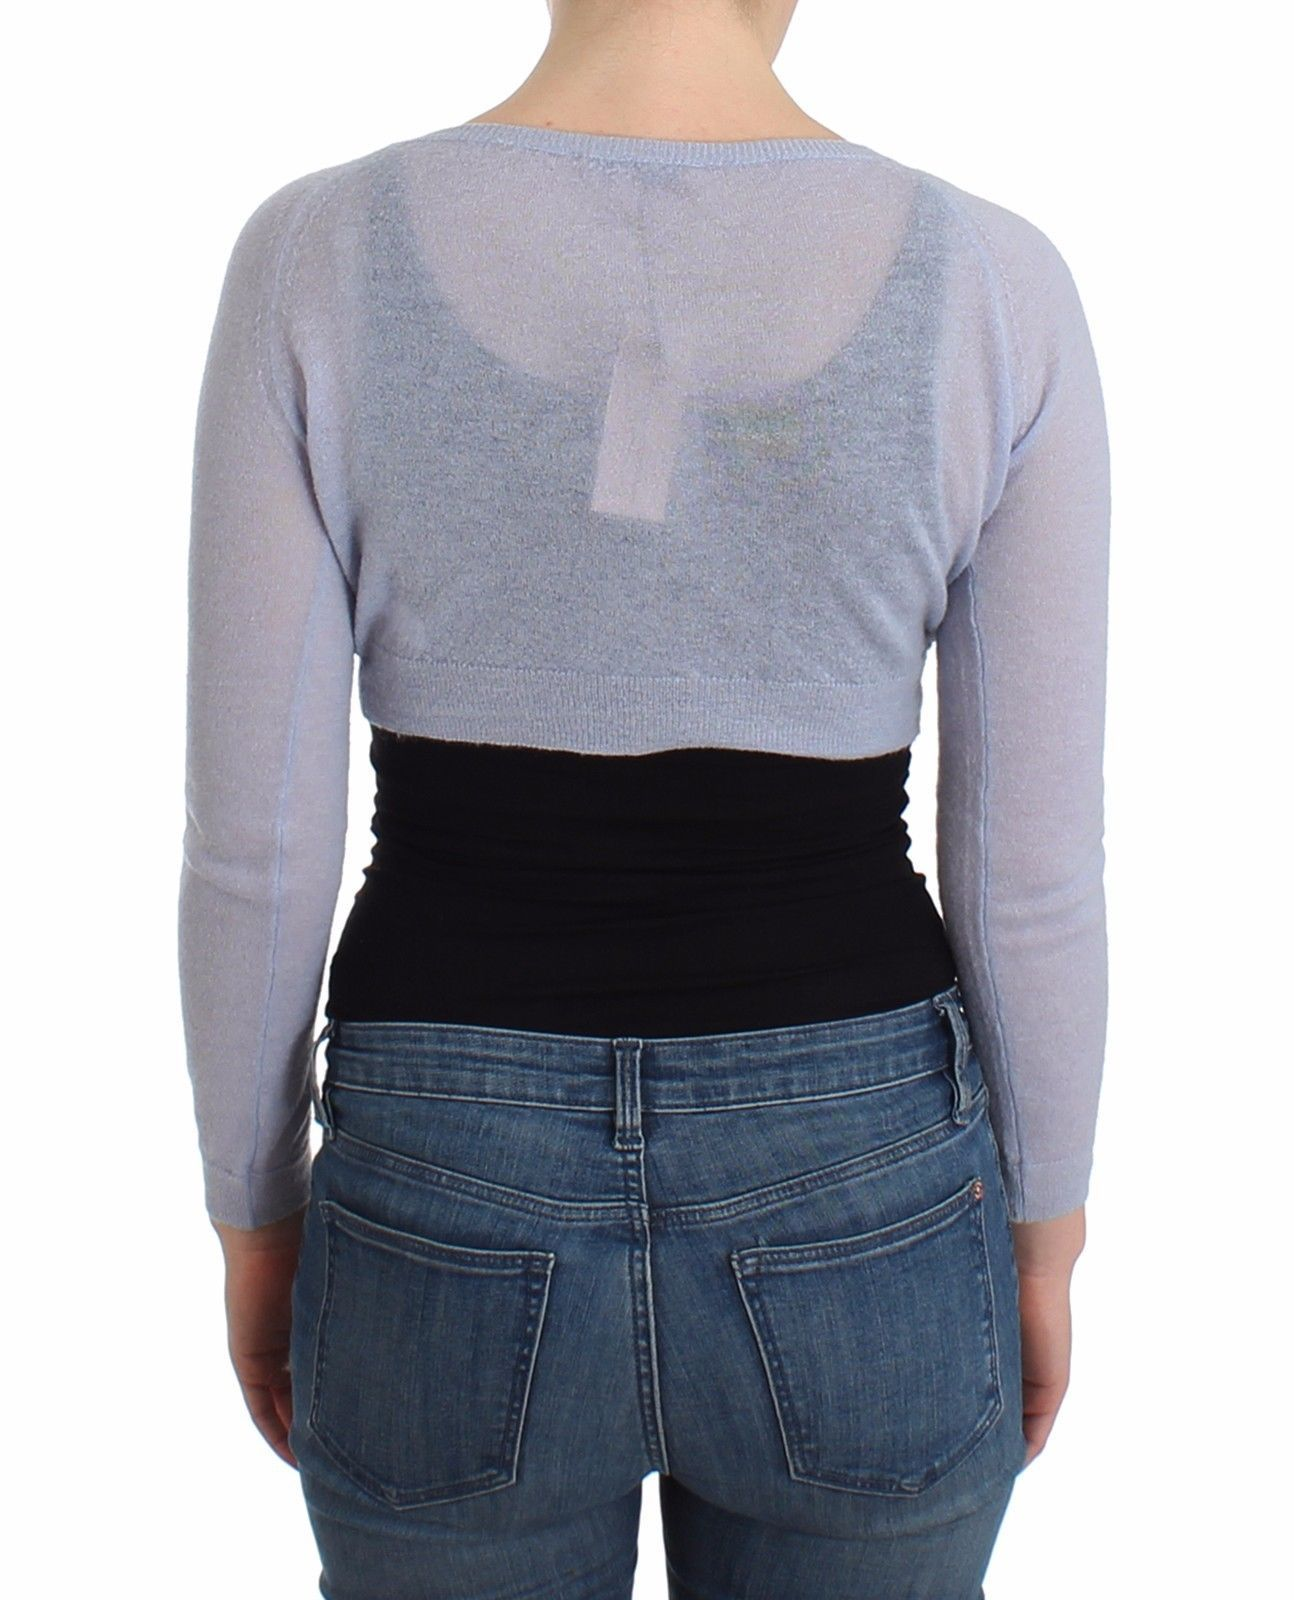 Ermanno Scervino Lingerie Blue Knit Cropped Sweater Cardigan